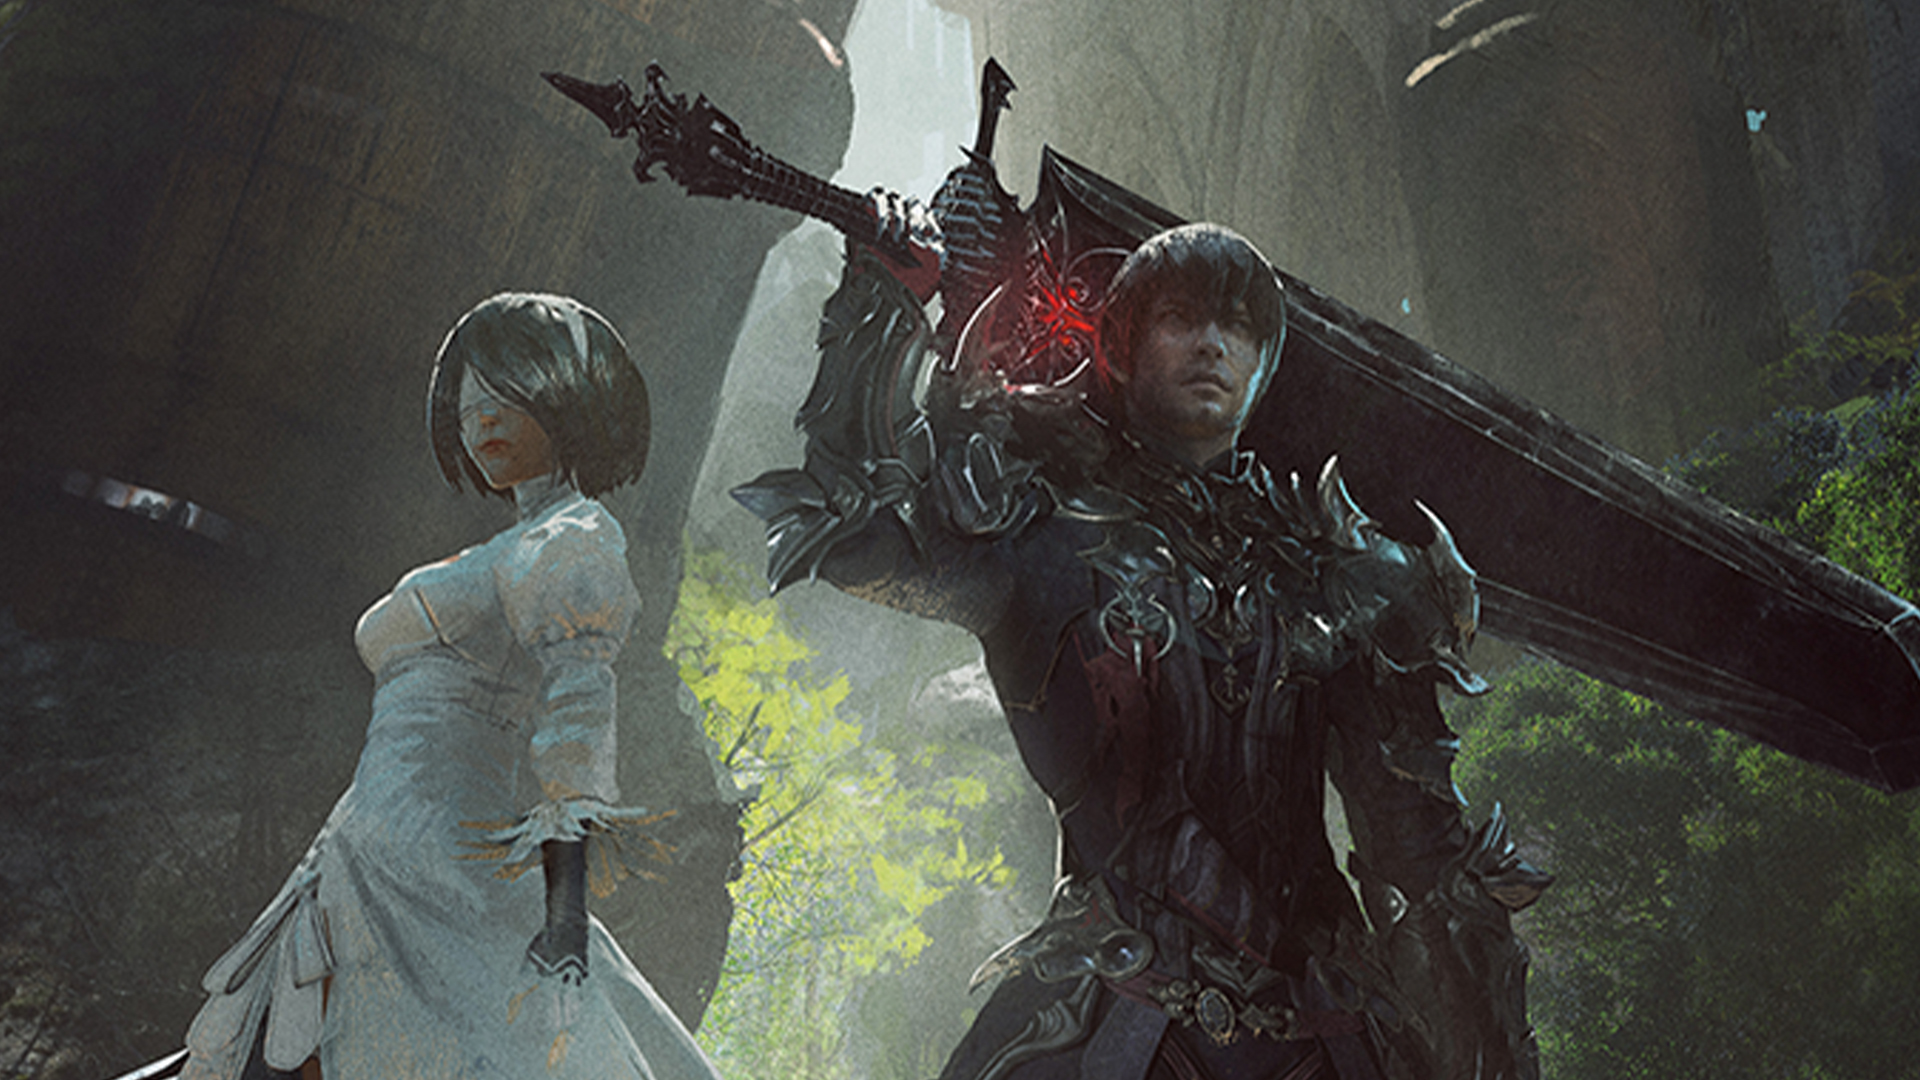 Final Fantasy Xiv Patch 5 1 Reworks Crafting And Brings The First